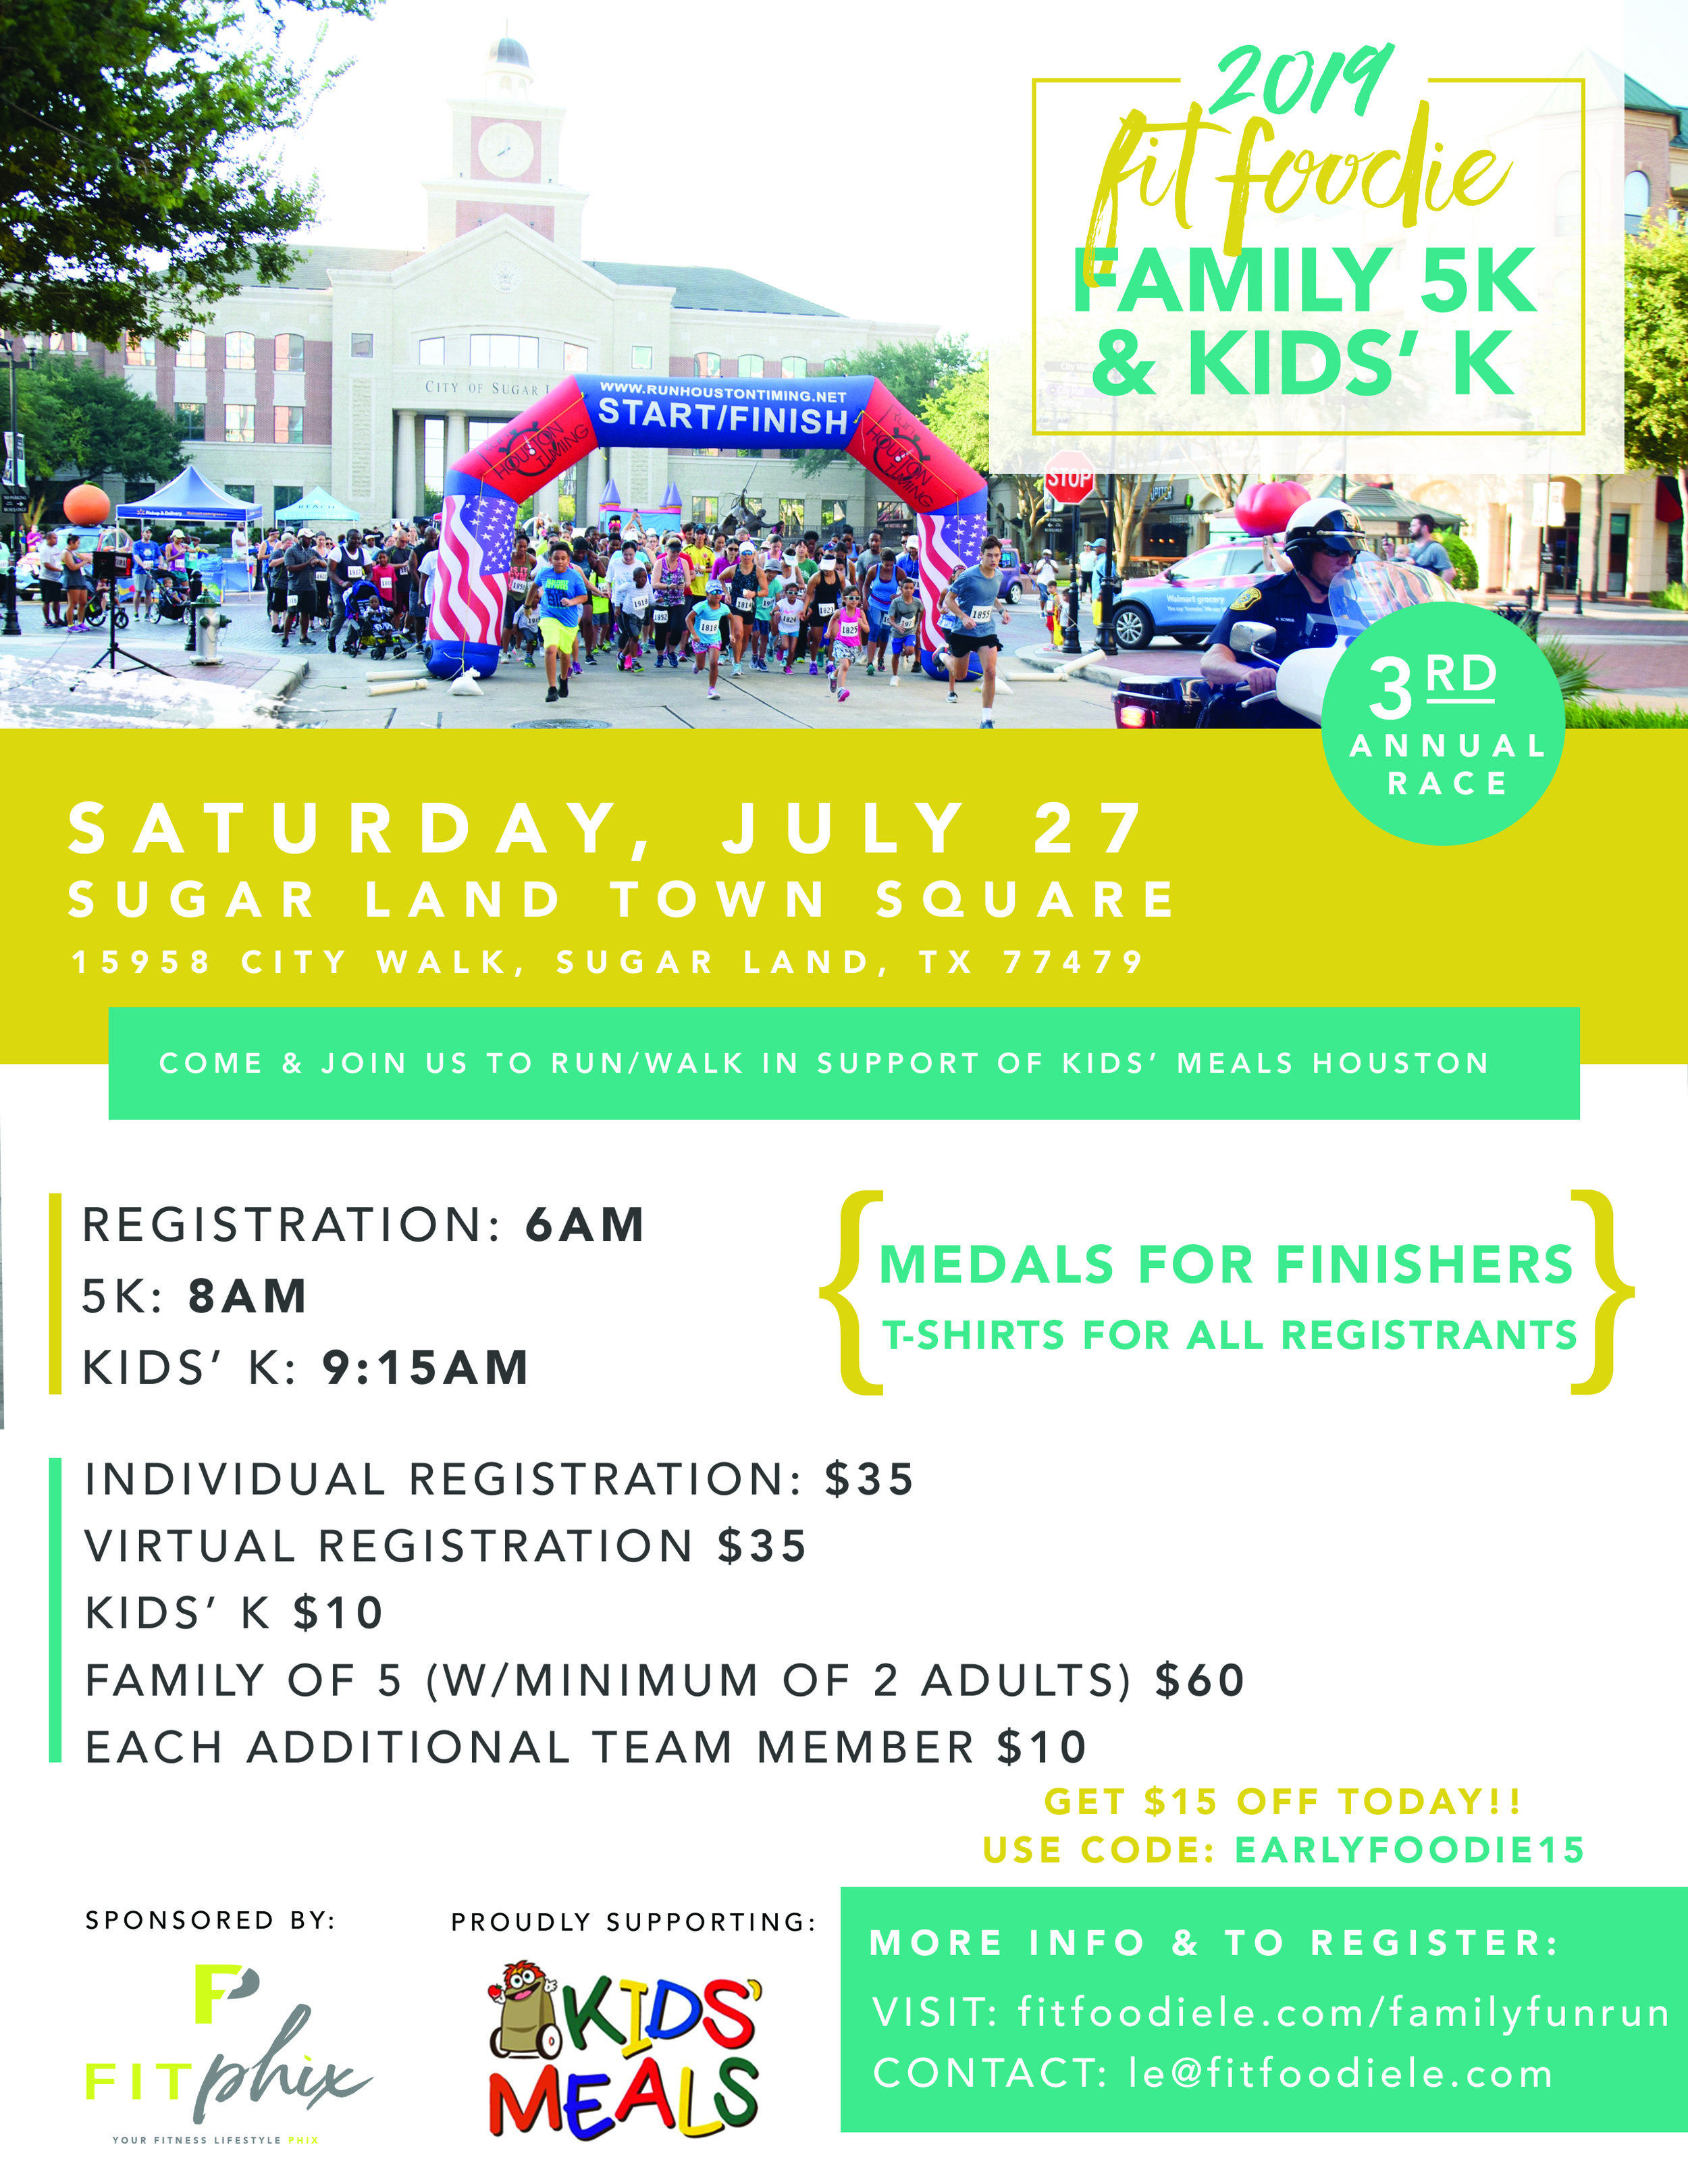 2019 Fit Family 5K & Kids' K - flyer.jpg